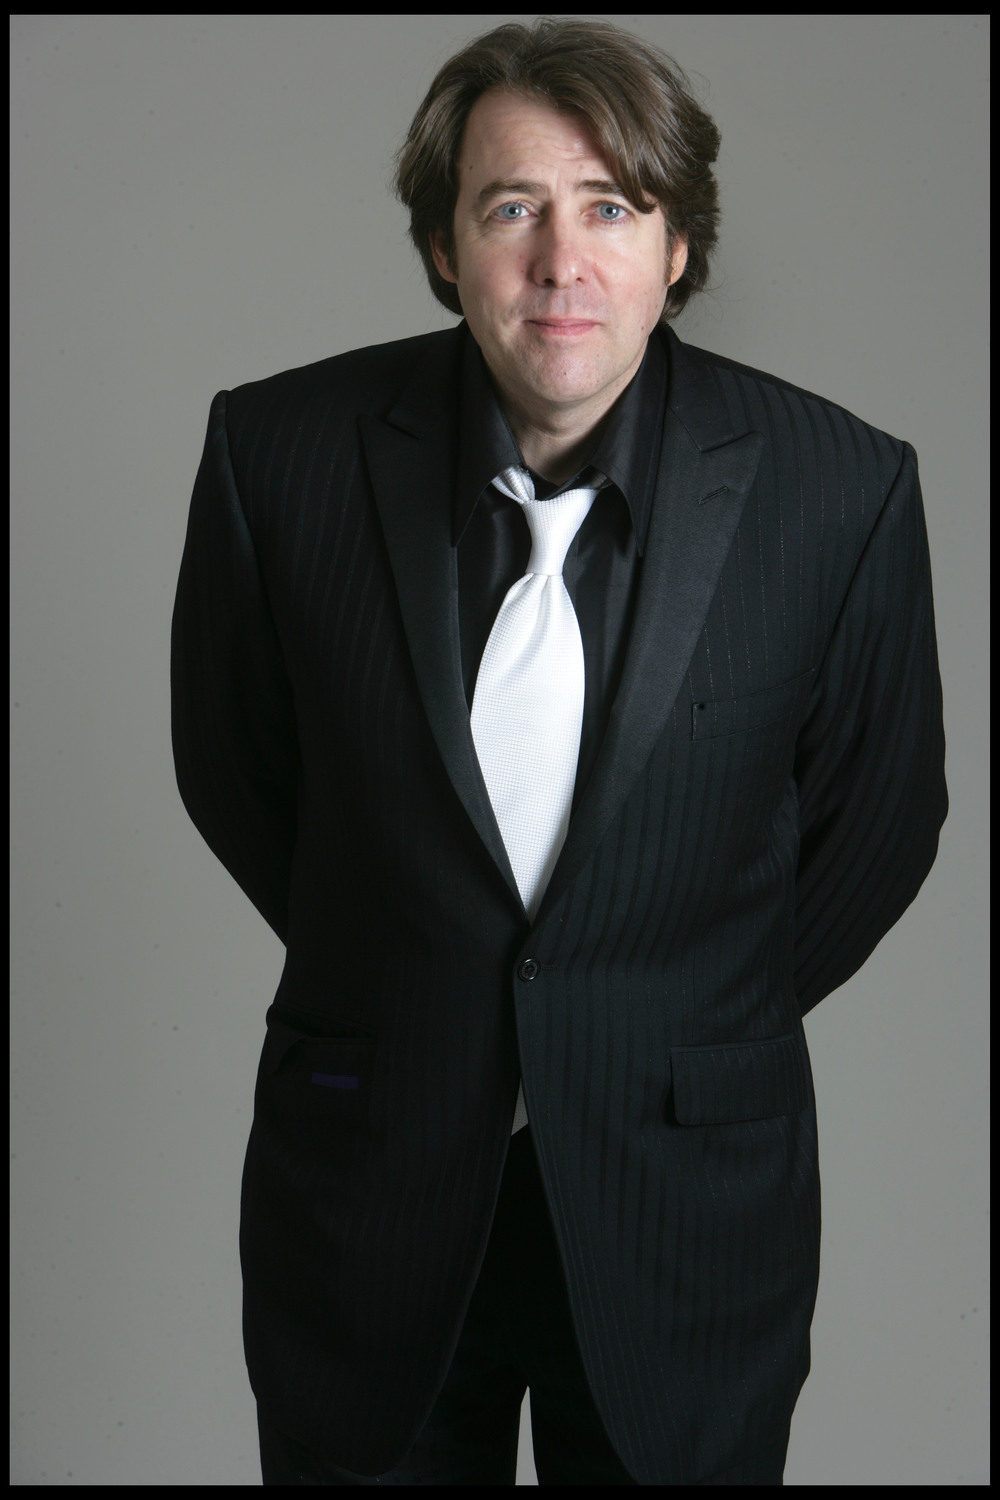 Jonathan Ross, entertainer